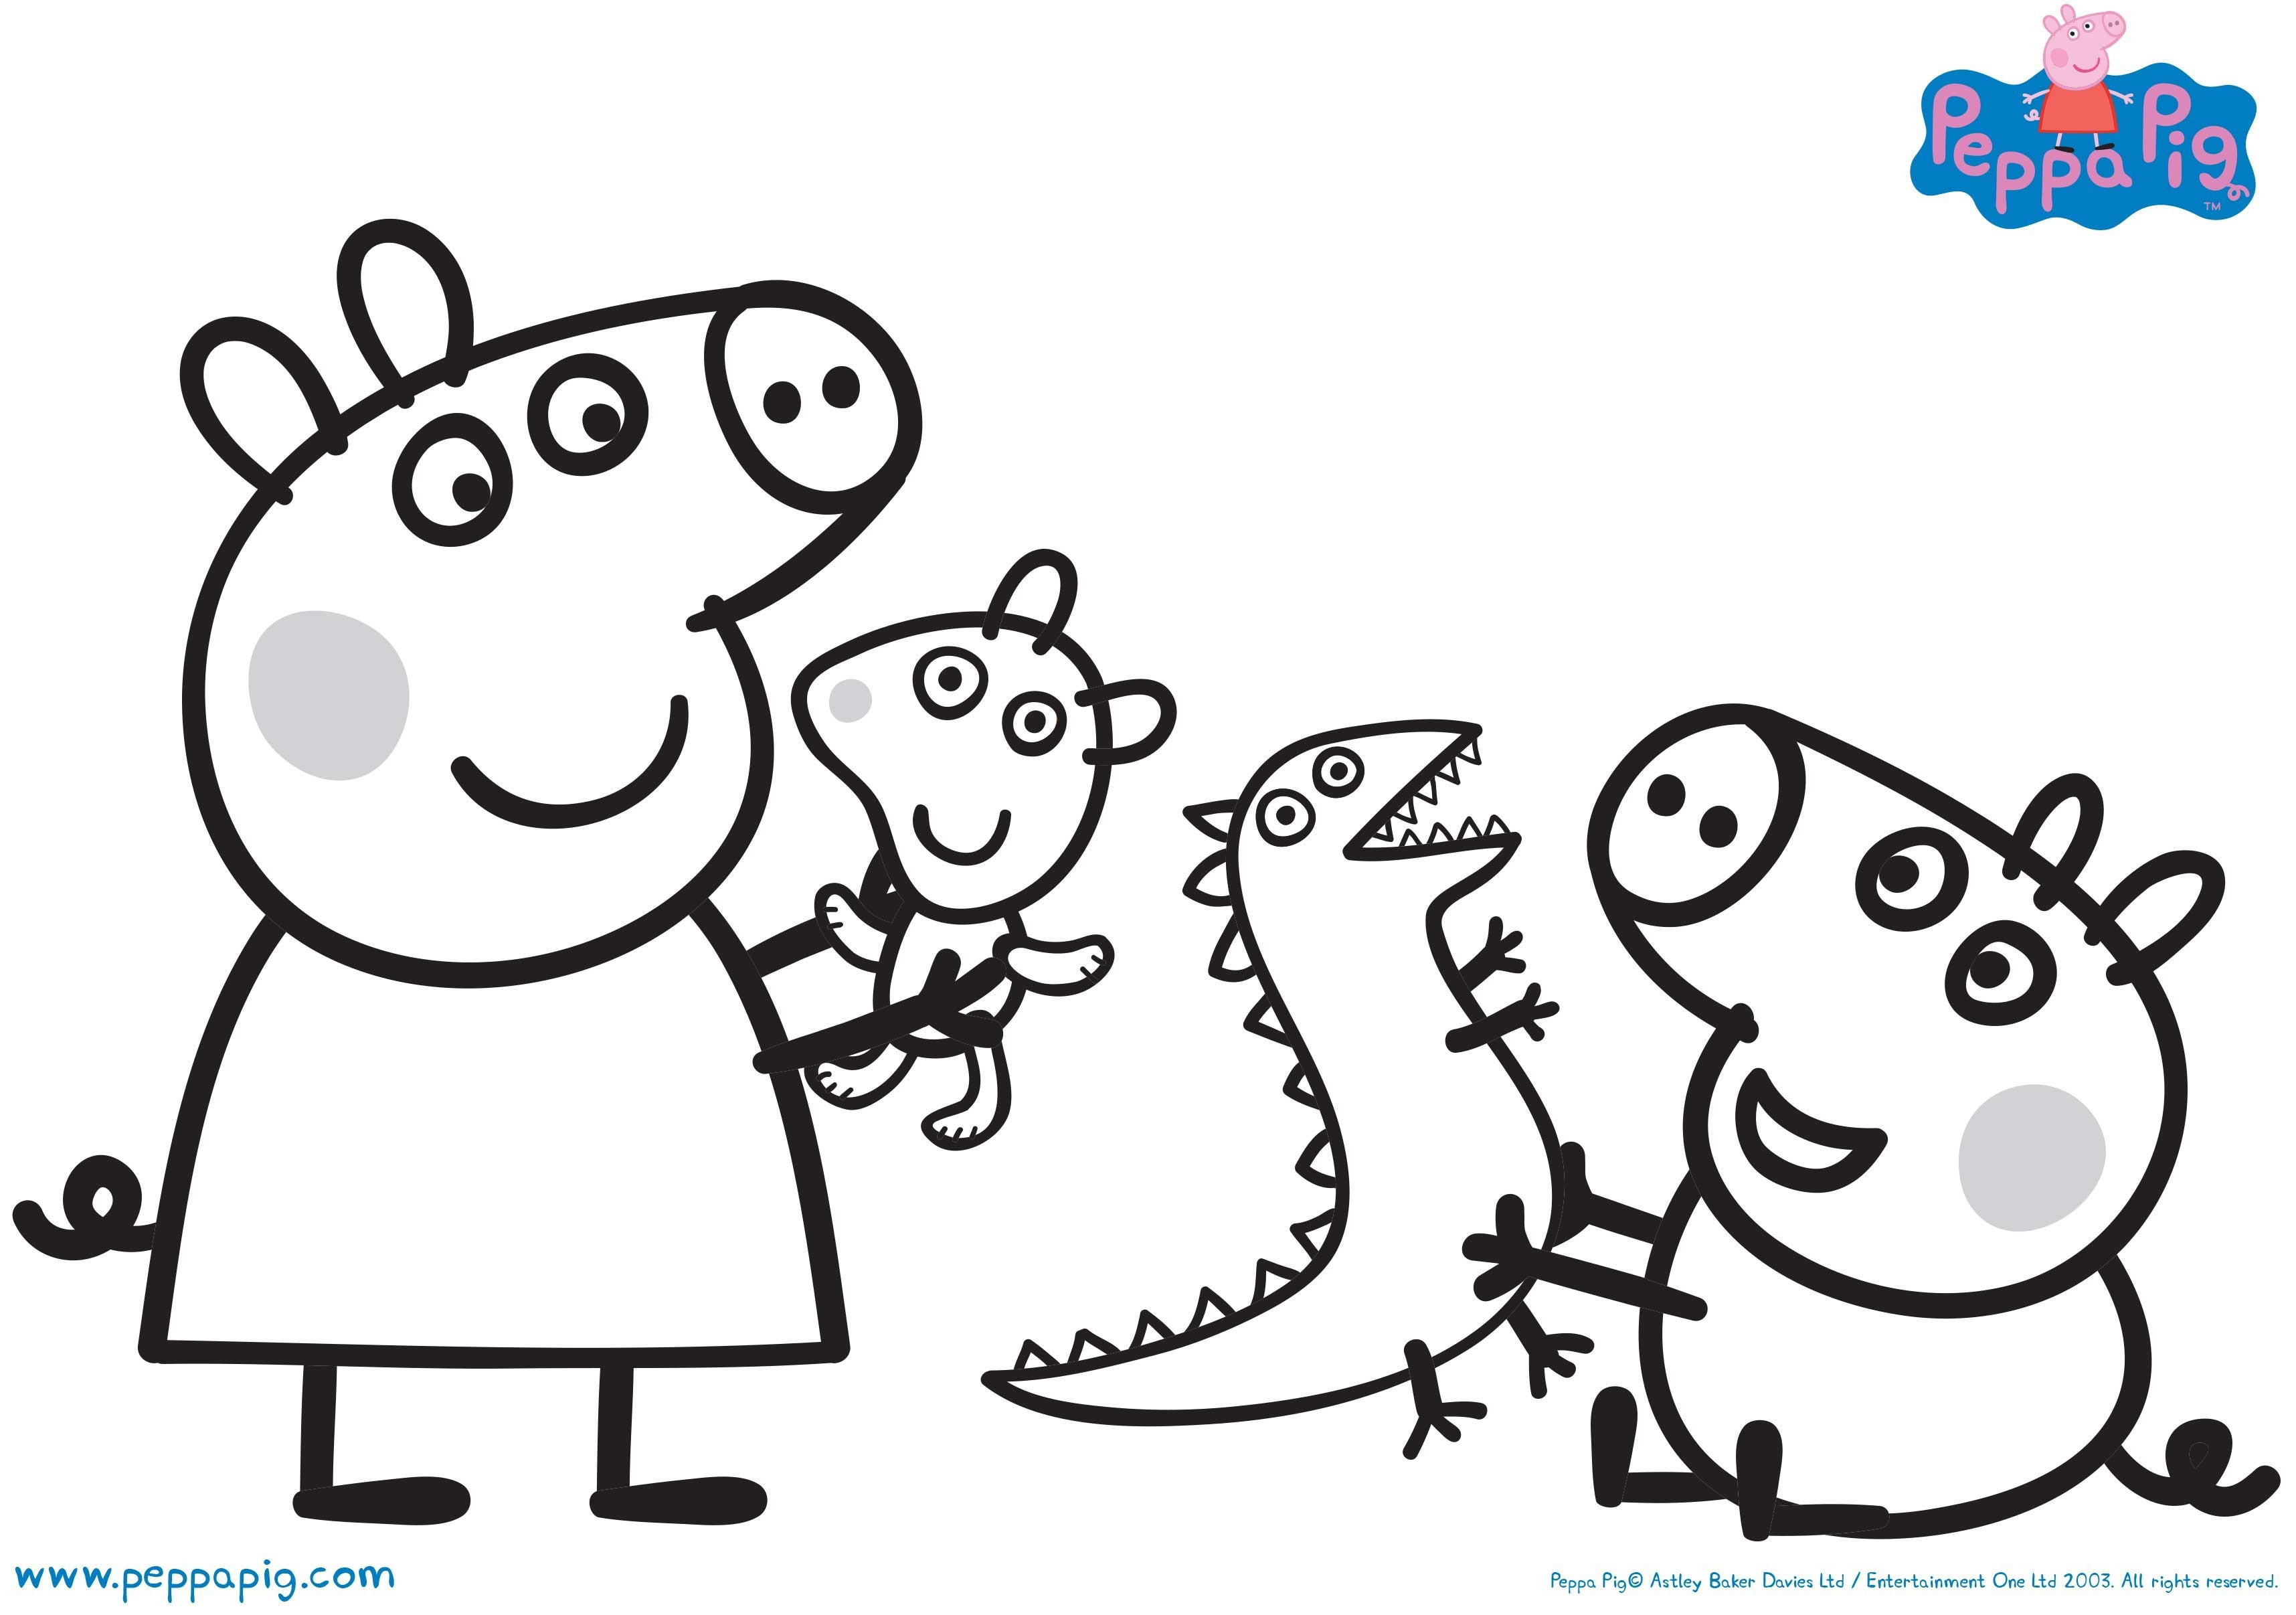 Peppa pig colouring pages uk bubakids peppa pig colouring pages uk wallpaper details maxwellsz